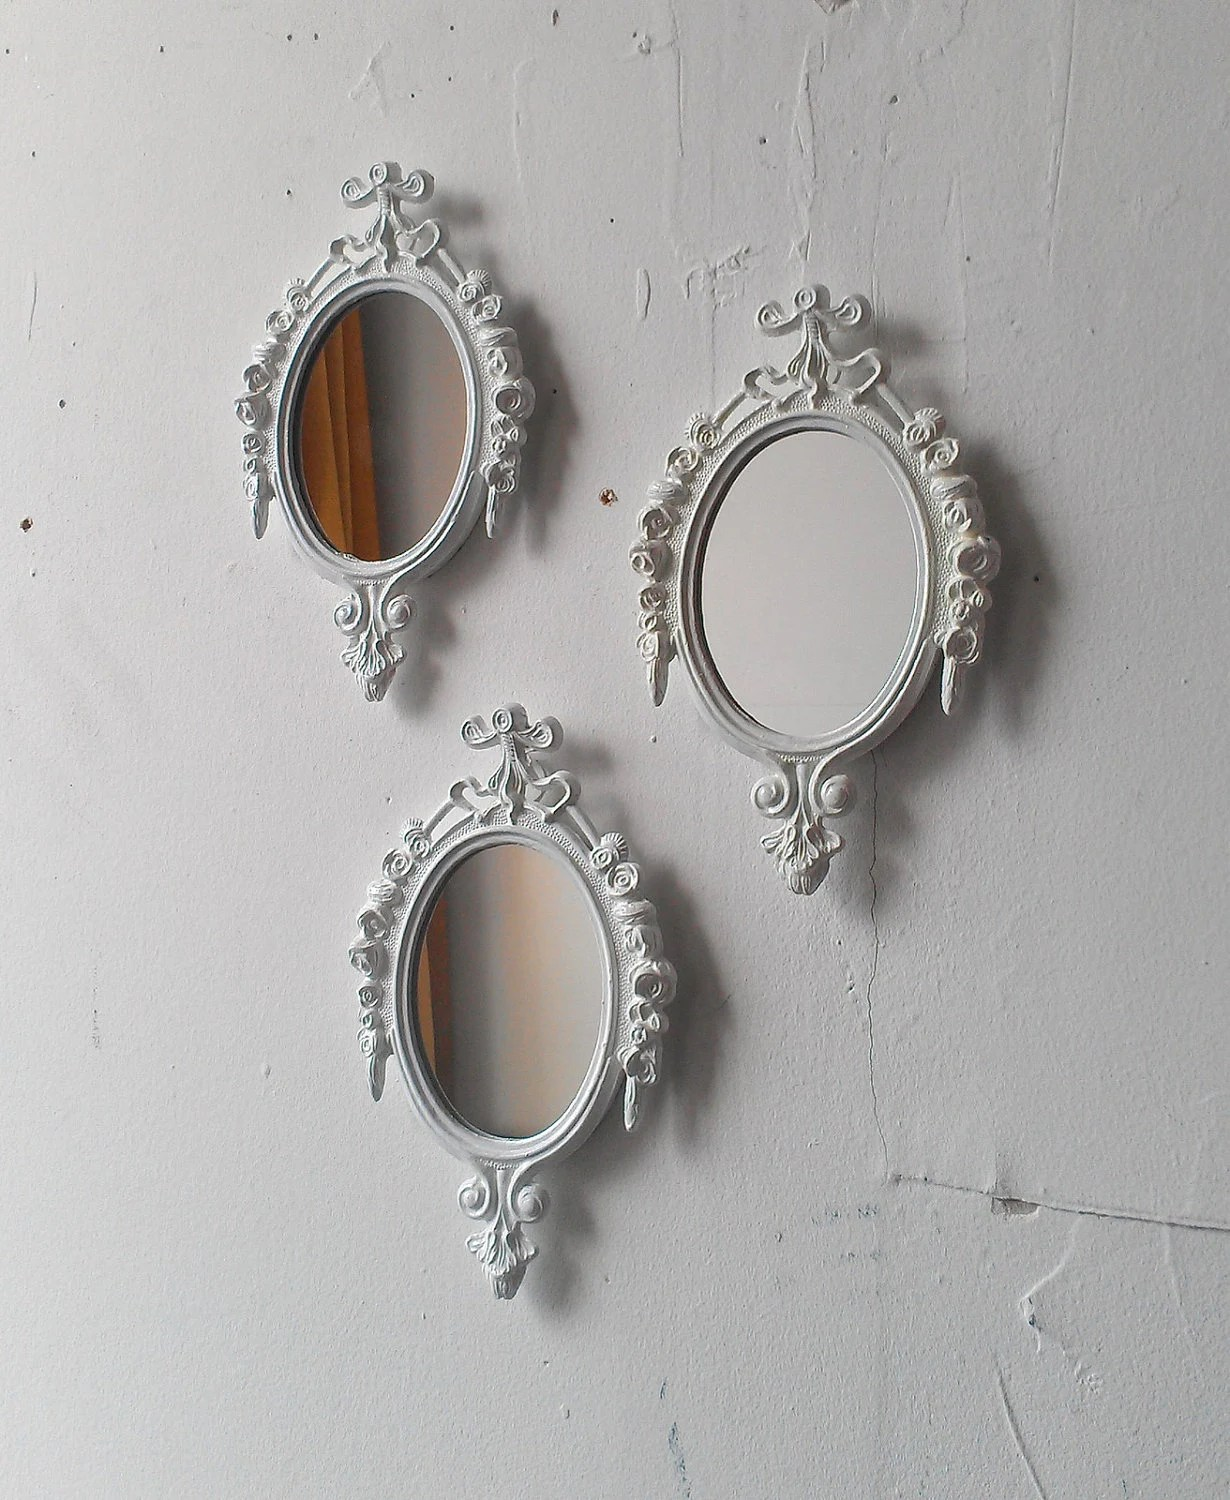 Decorative Mirror White Mirror Set Small Decorative Mirrors Vintage French Country Cottage White Nursery Wall Decor Ideas Baby Shower Gifts